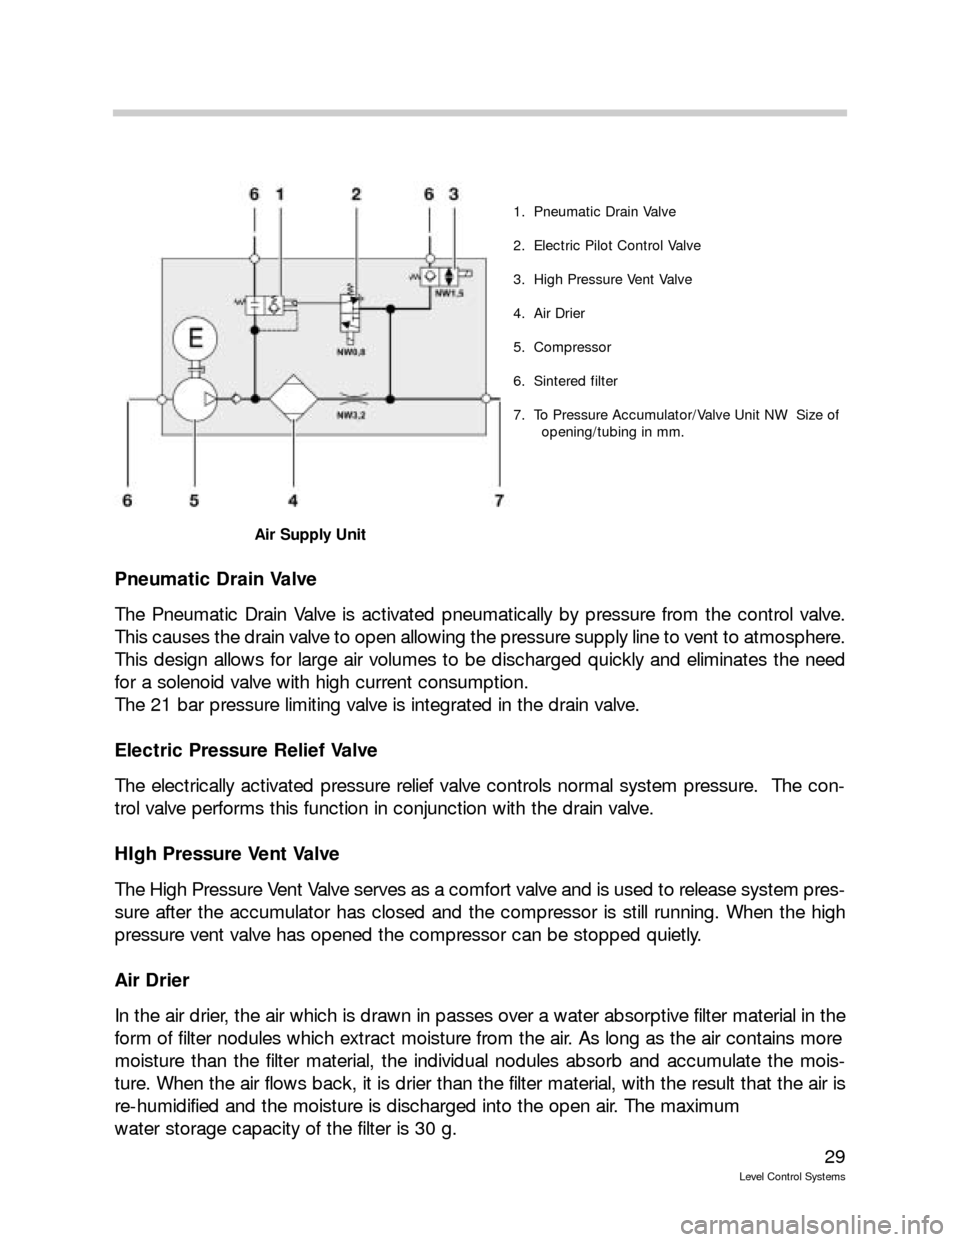 BMW 745LI 2008 E66 Level Control System Manual, Page 29